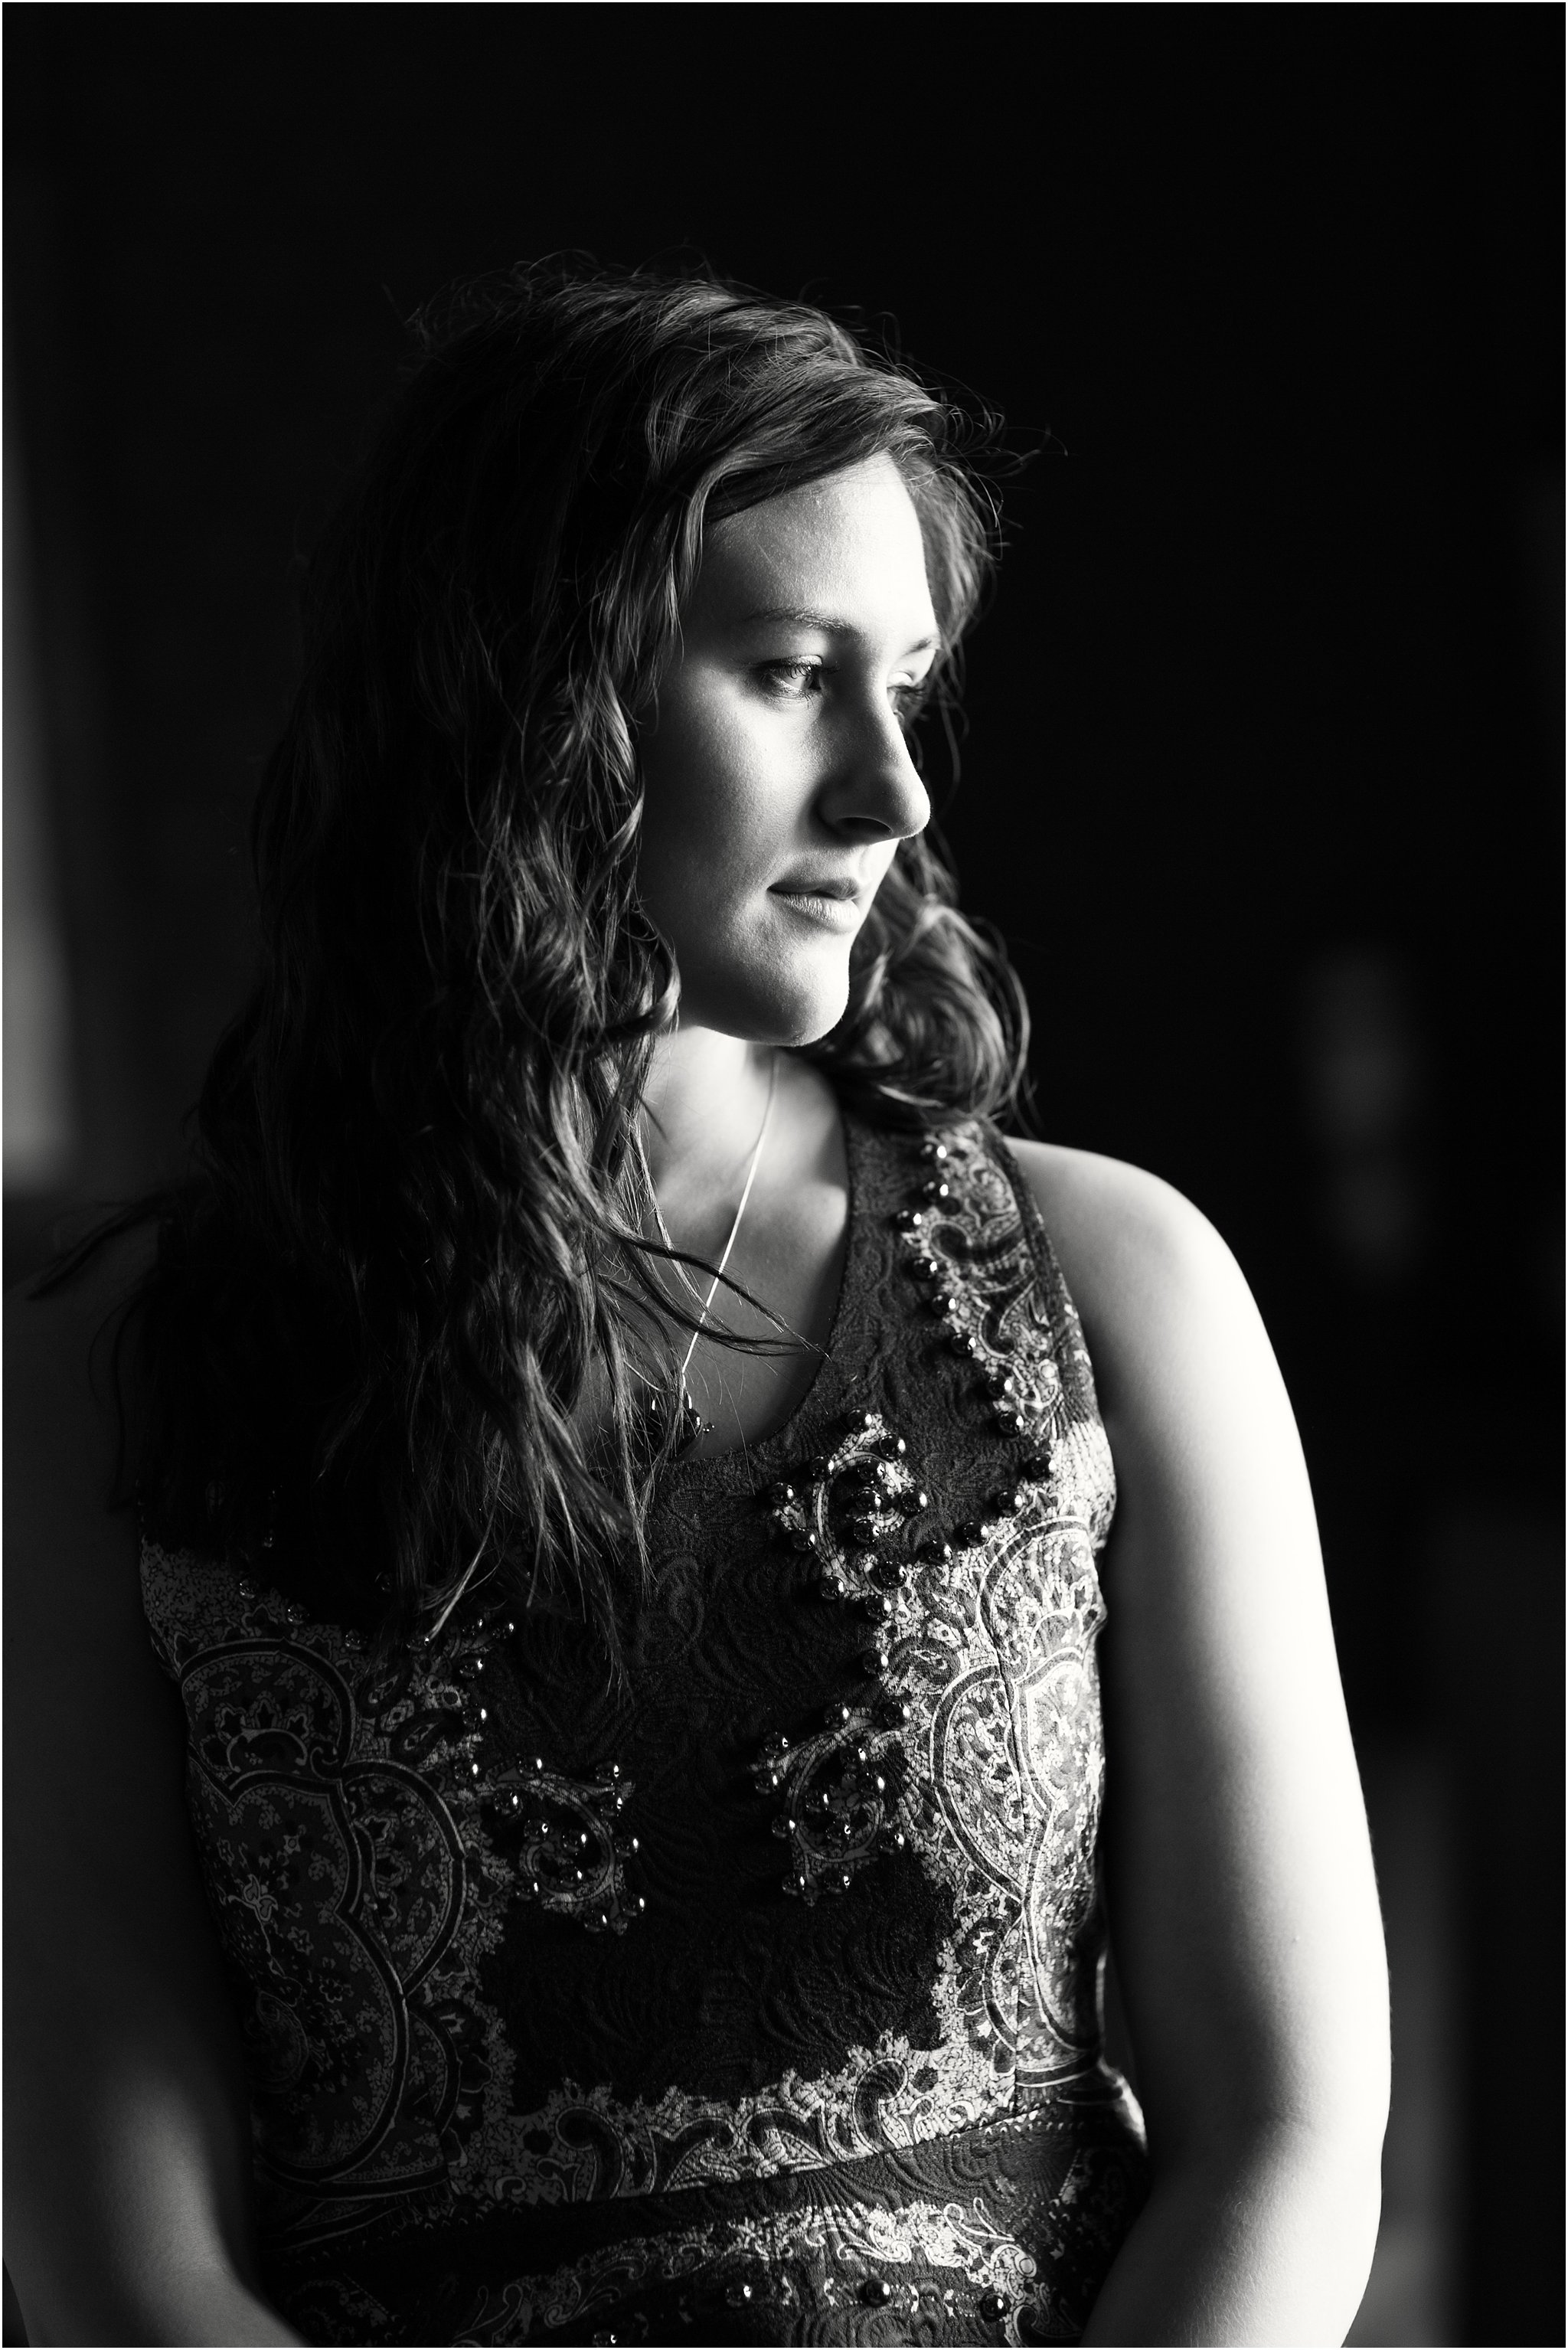 Black and White Portrait of Bride-to-Be